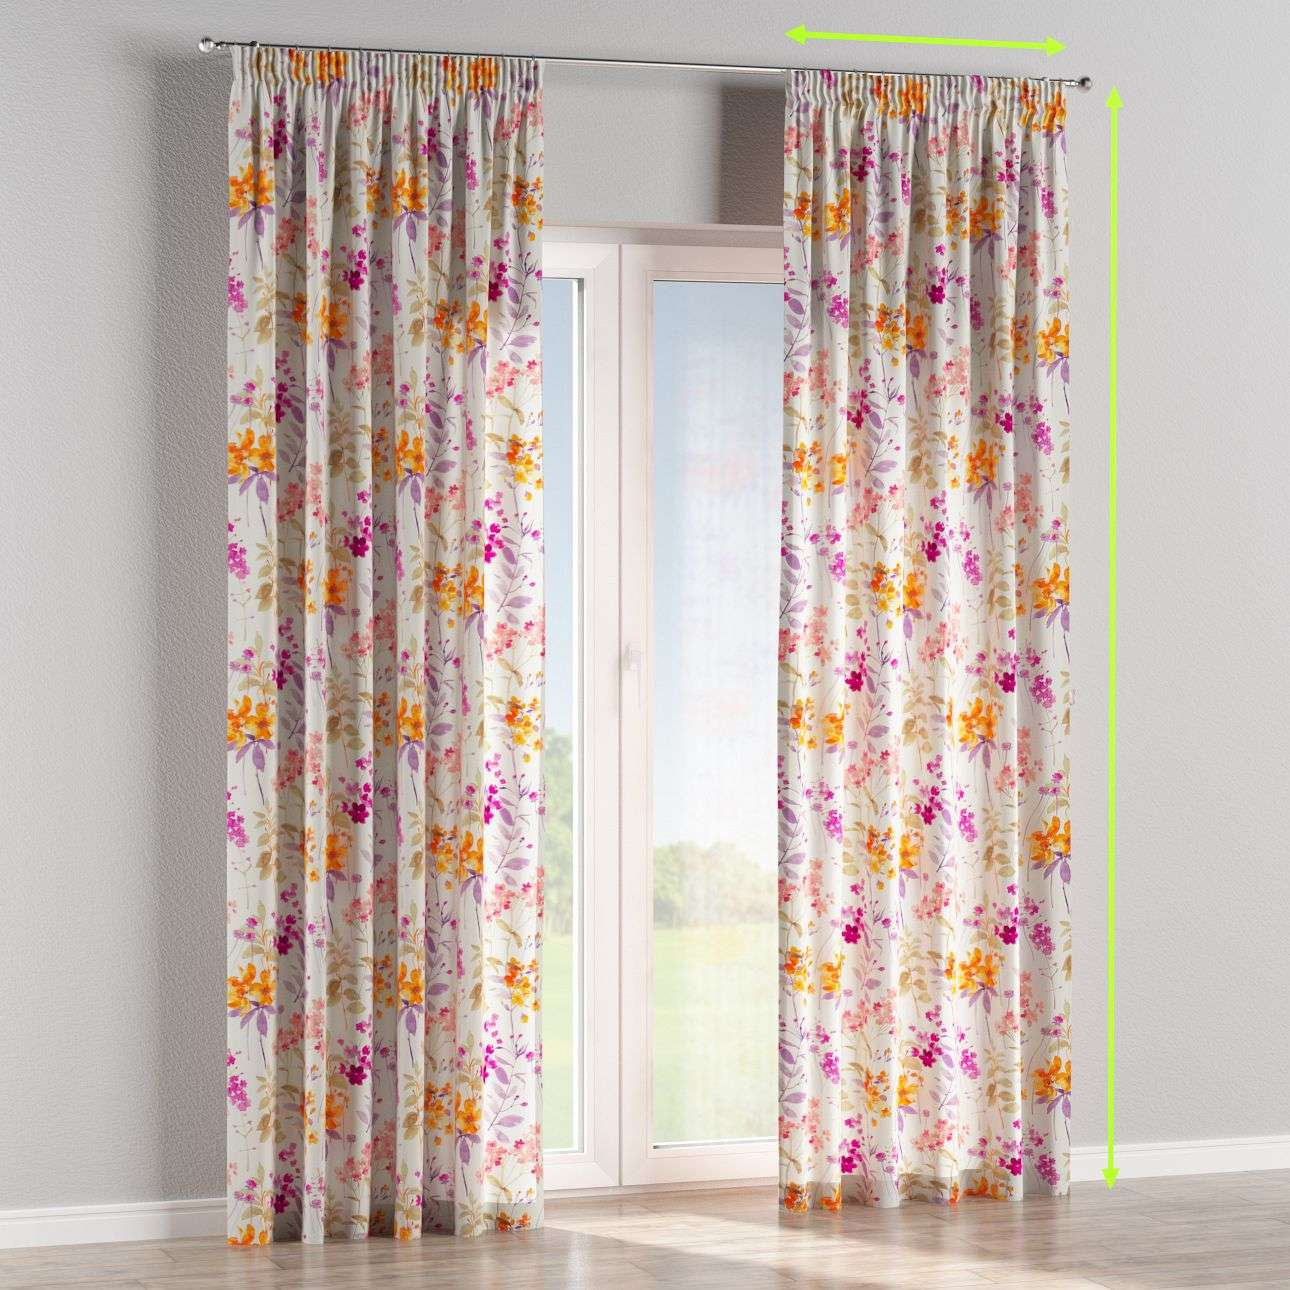 Pencil pleat curtains in collection Monet, fabric: 140-04